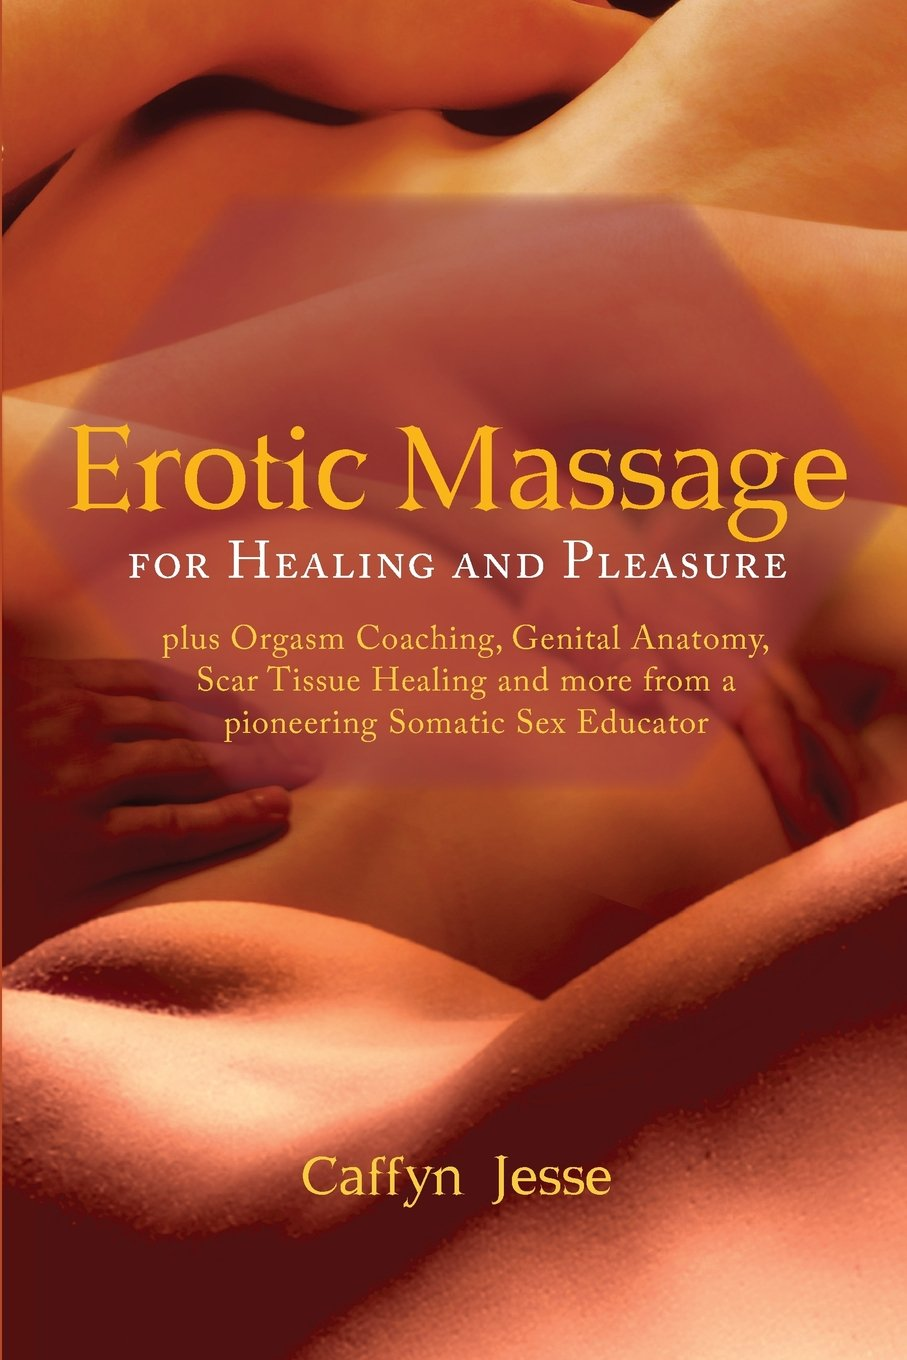 Body to body sexual massage